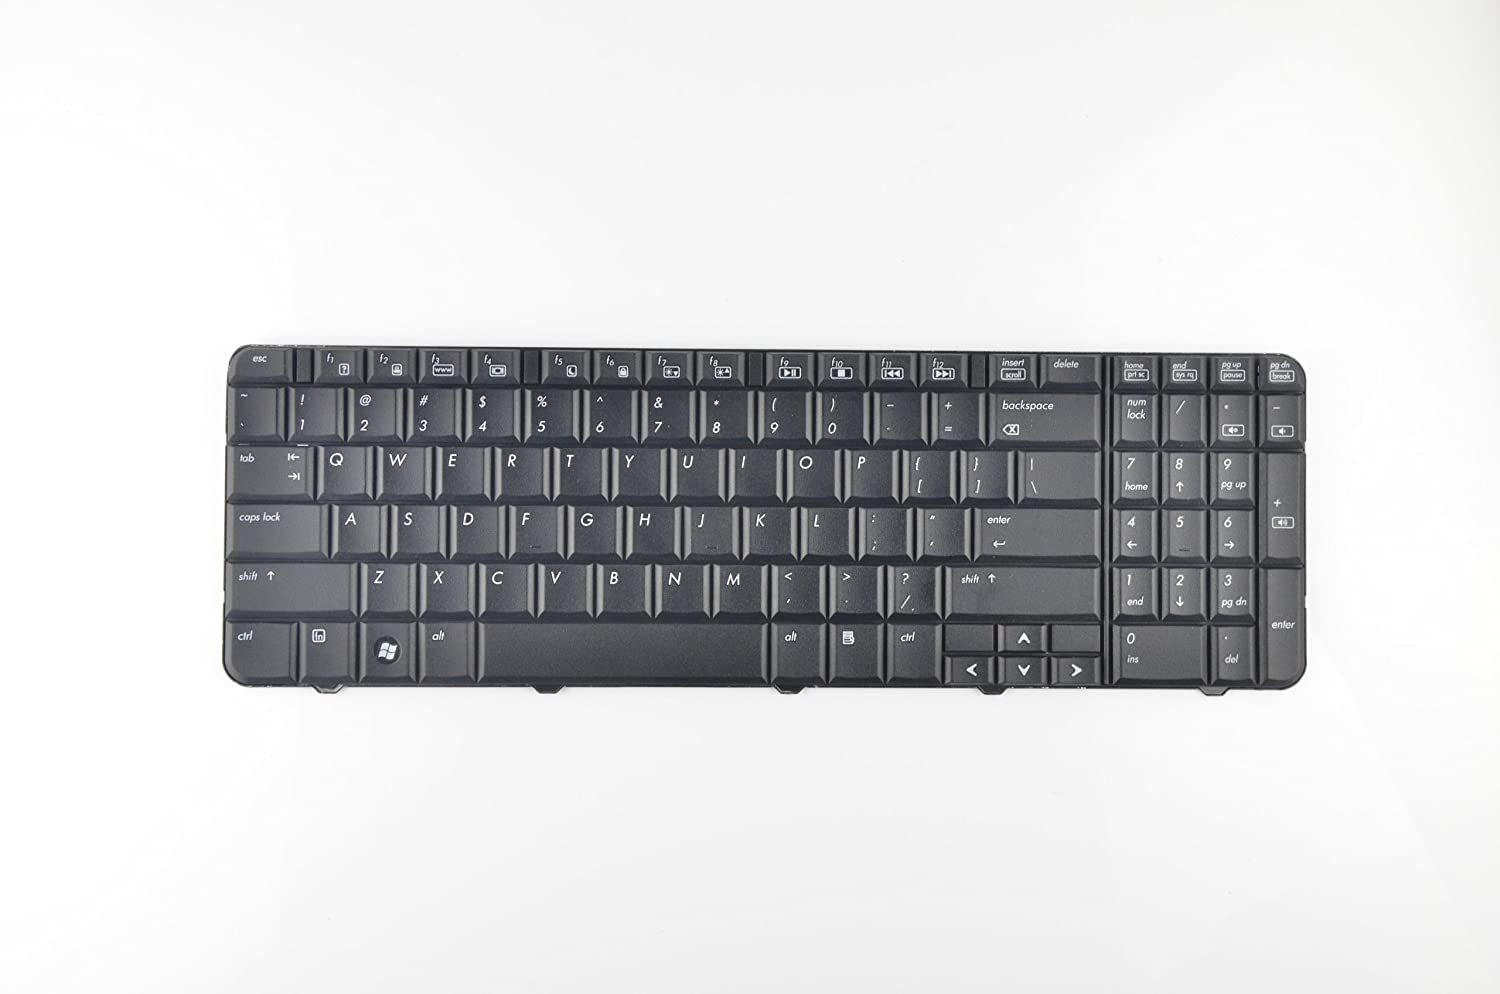 Amazon.com: Generic OEM NEW Replacement HP Compaq CQ60 CQ60Z G60 G60T  Keyboard 100% compatible: Computers & Accessories